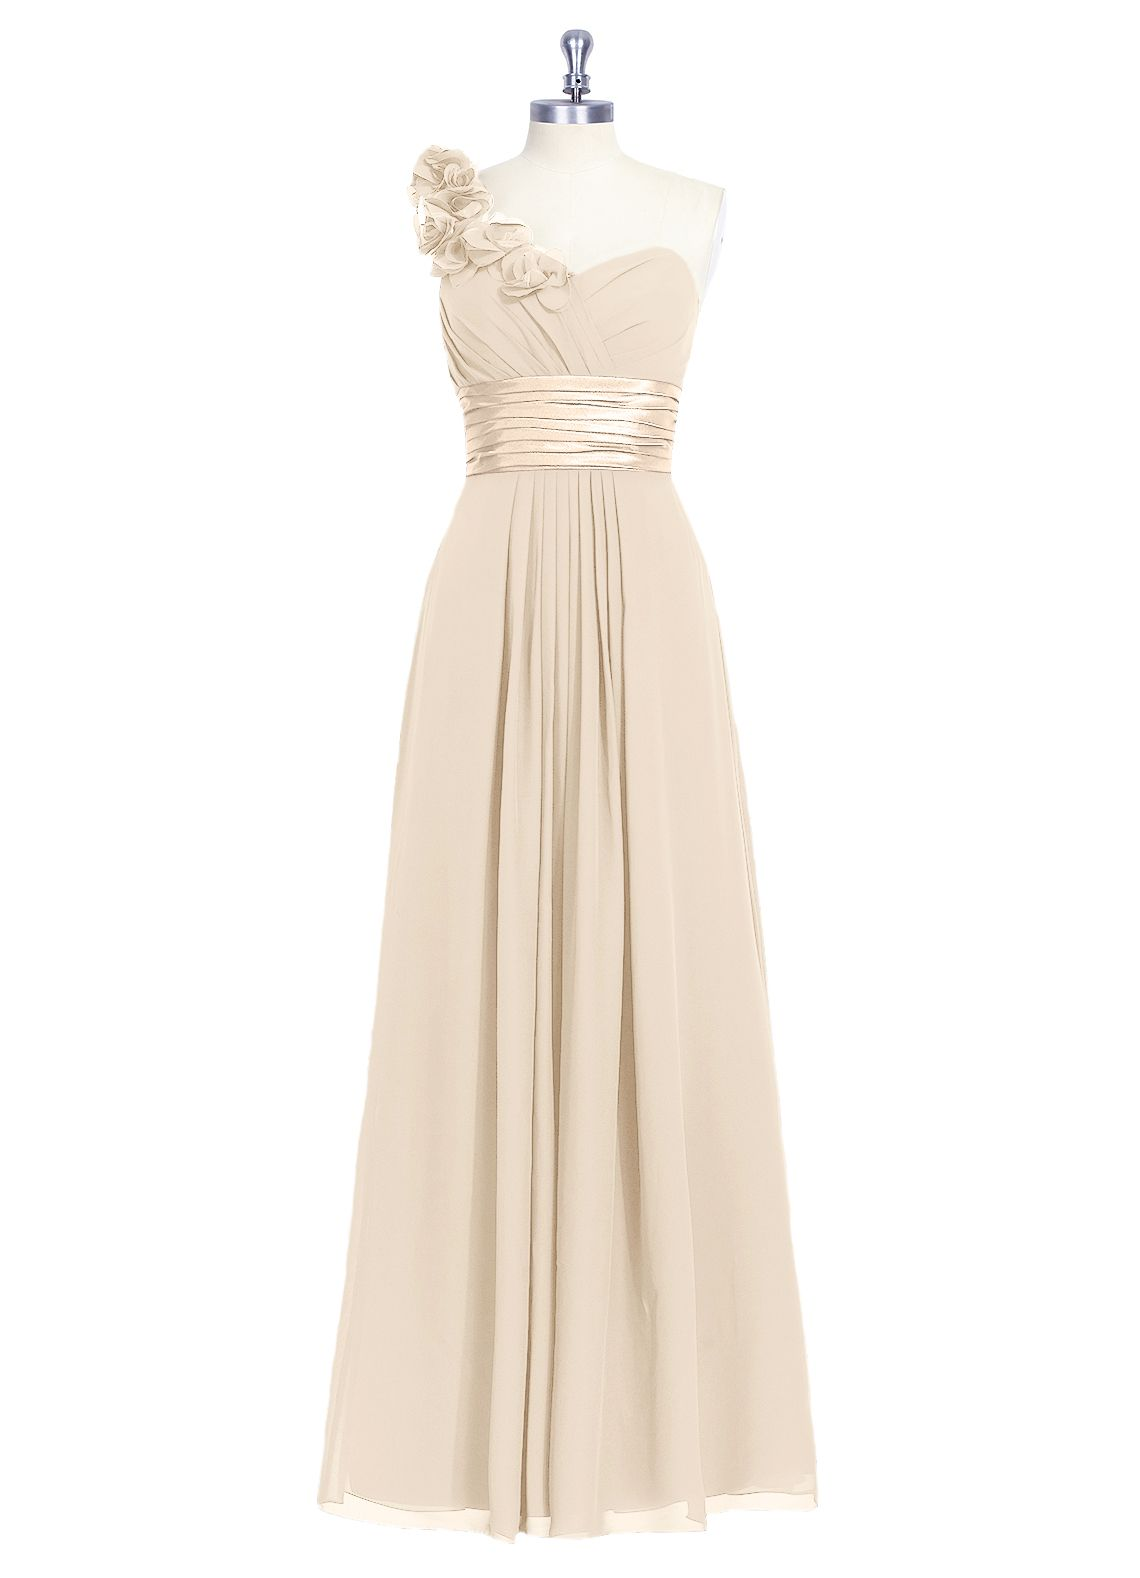 The azazie evelyn is a flirty and fun bridesmaid dress this